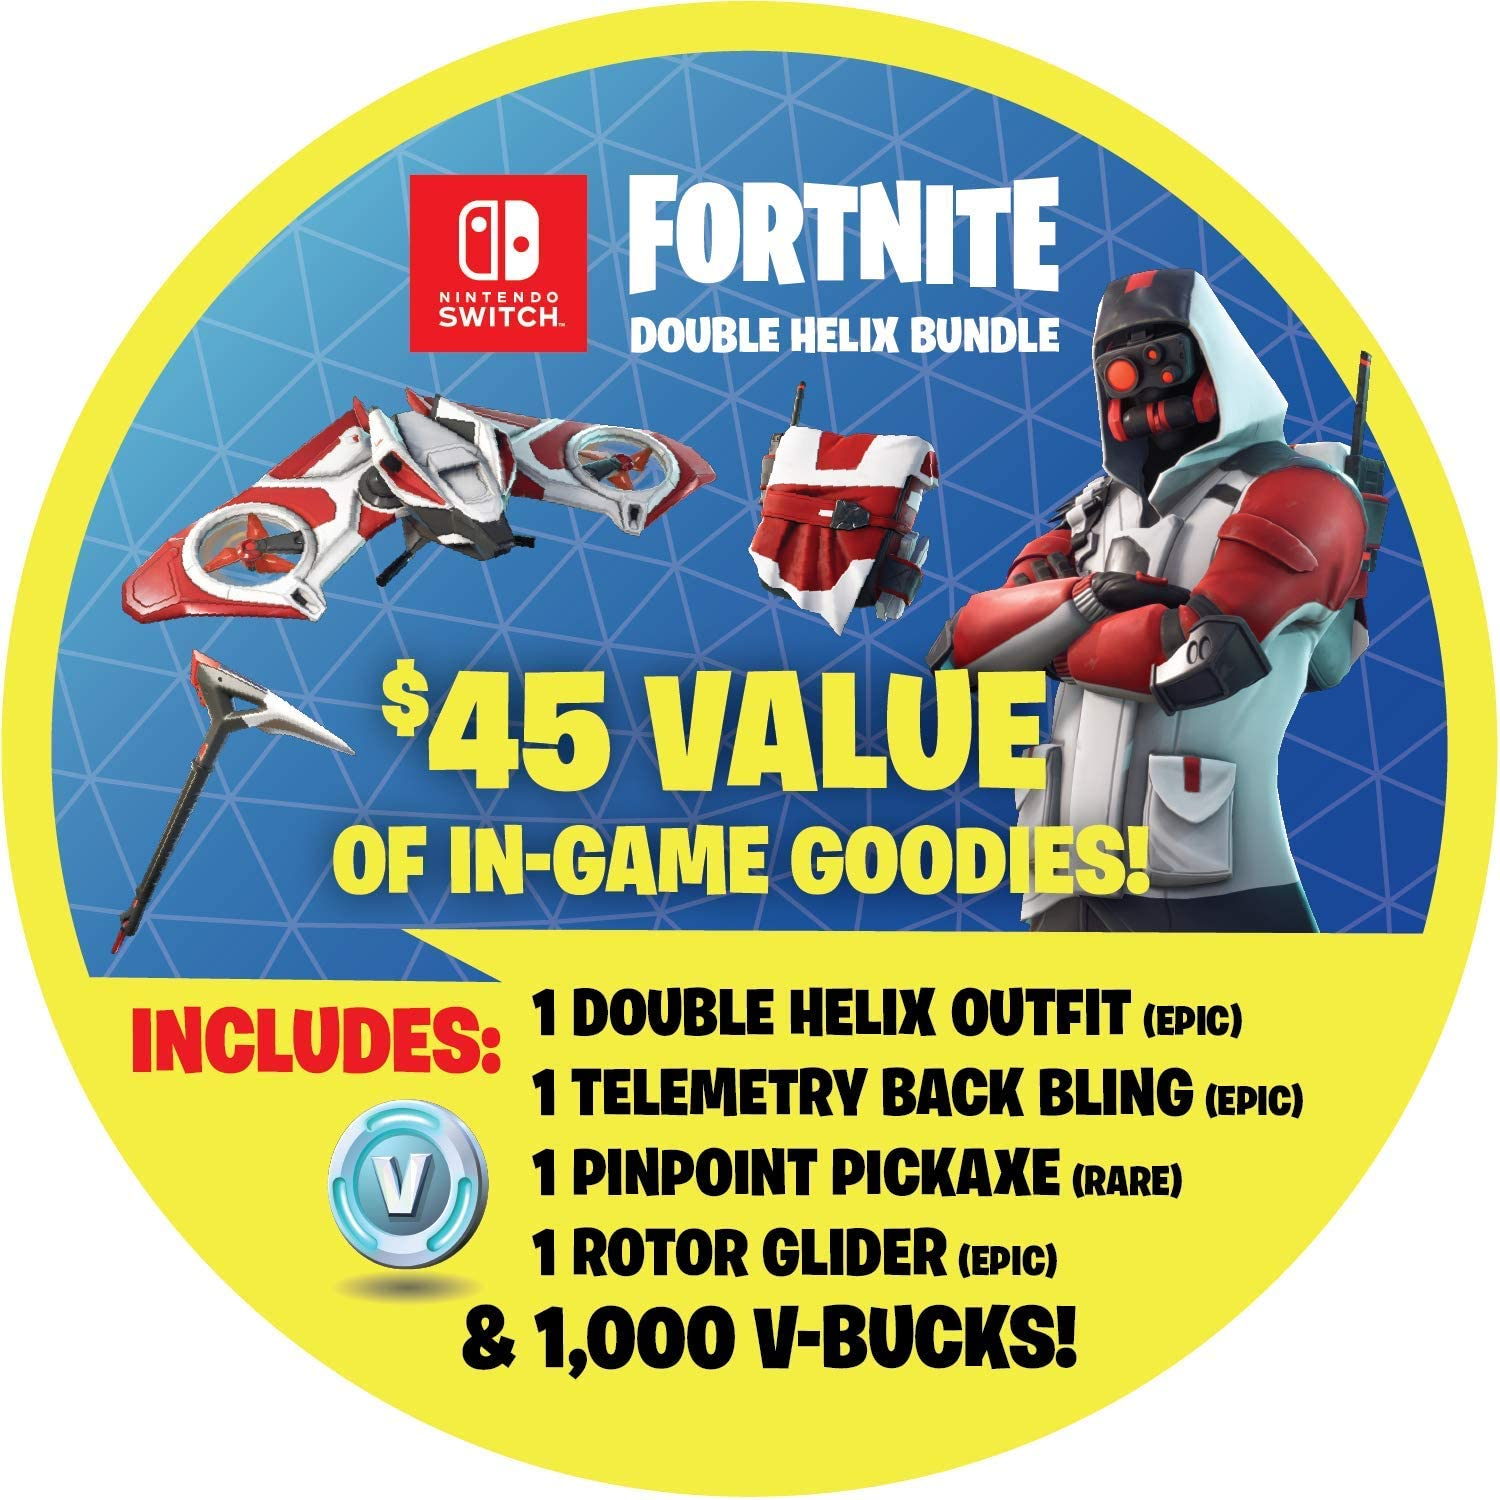 Amazon.com: Nintendo Switch: Fortnite - Double Helix Console ...